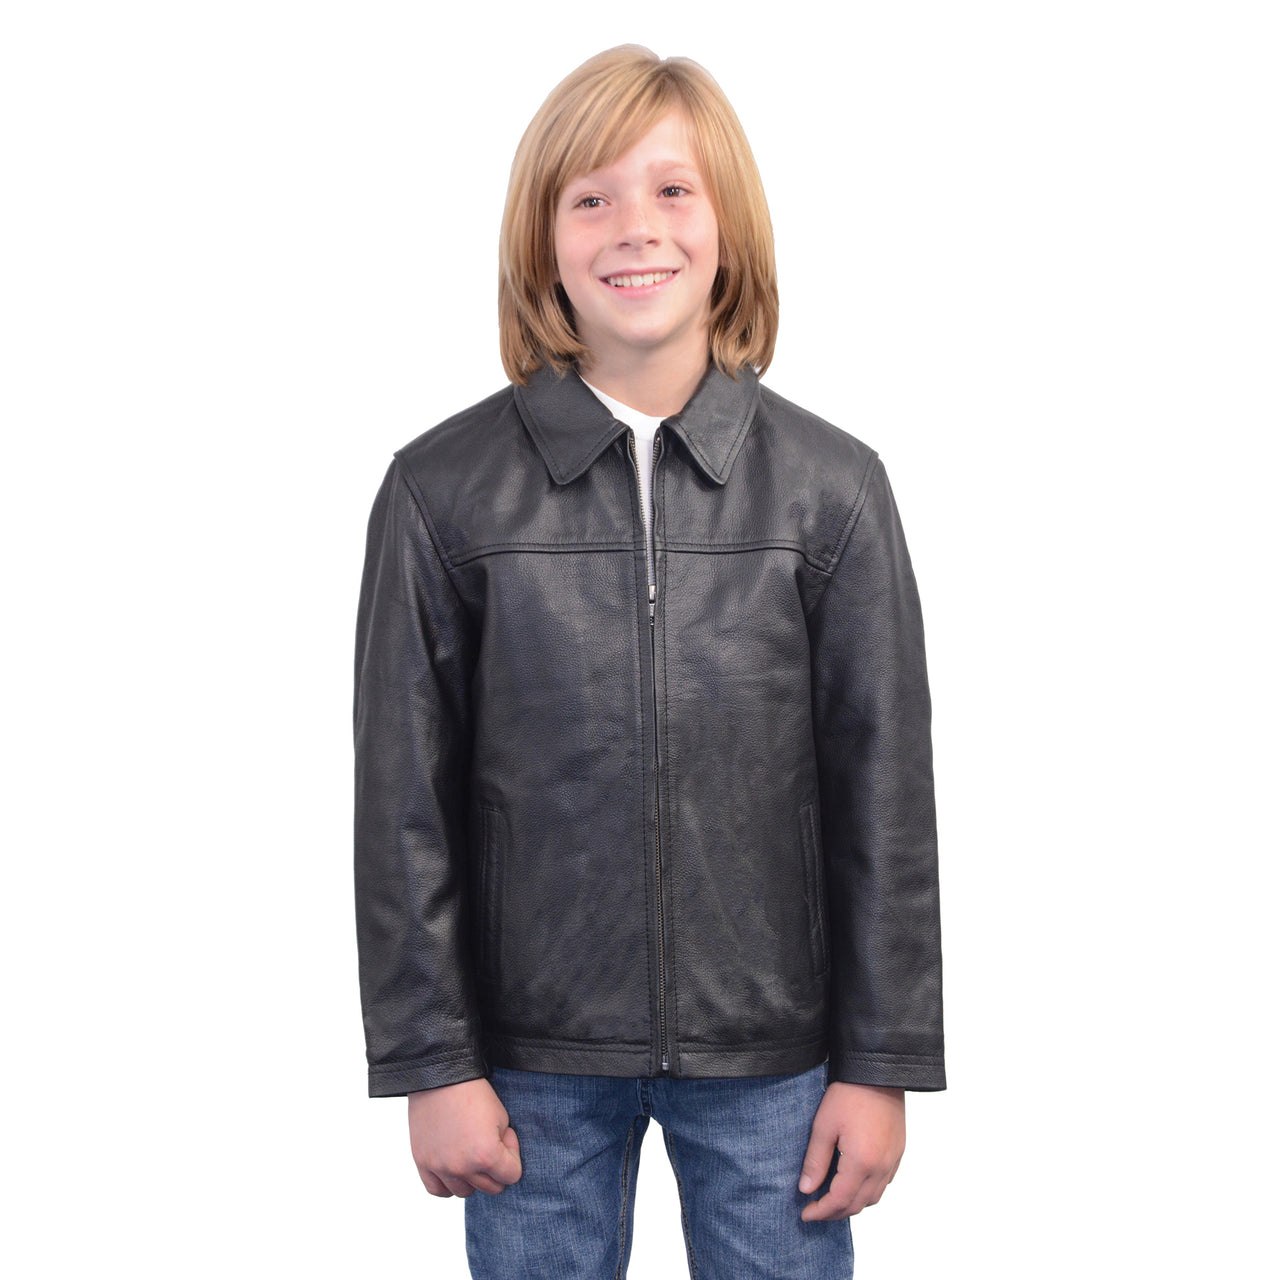 Youth Size Leather JD Zipper Front Jacket - HighwayLeather